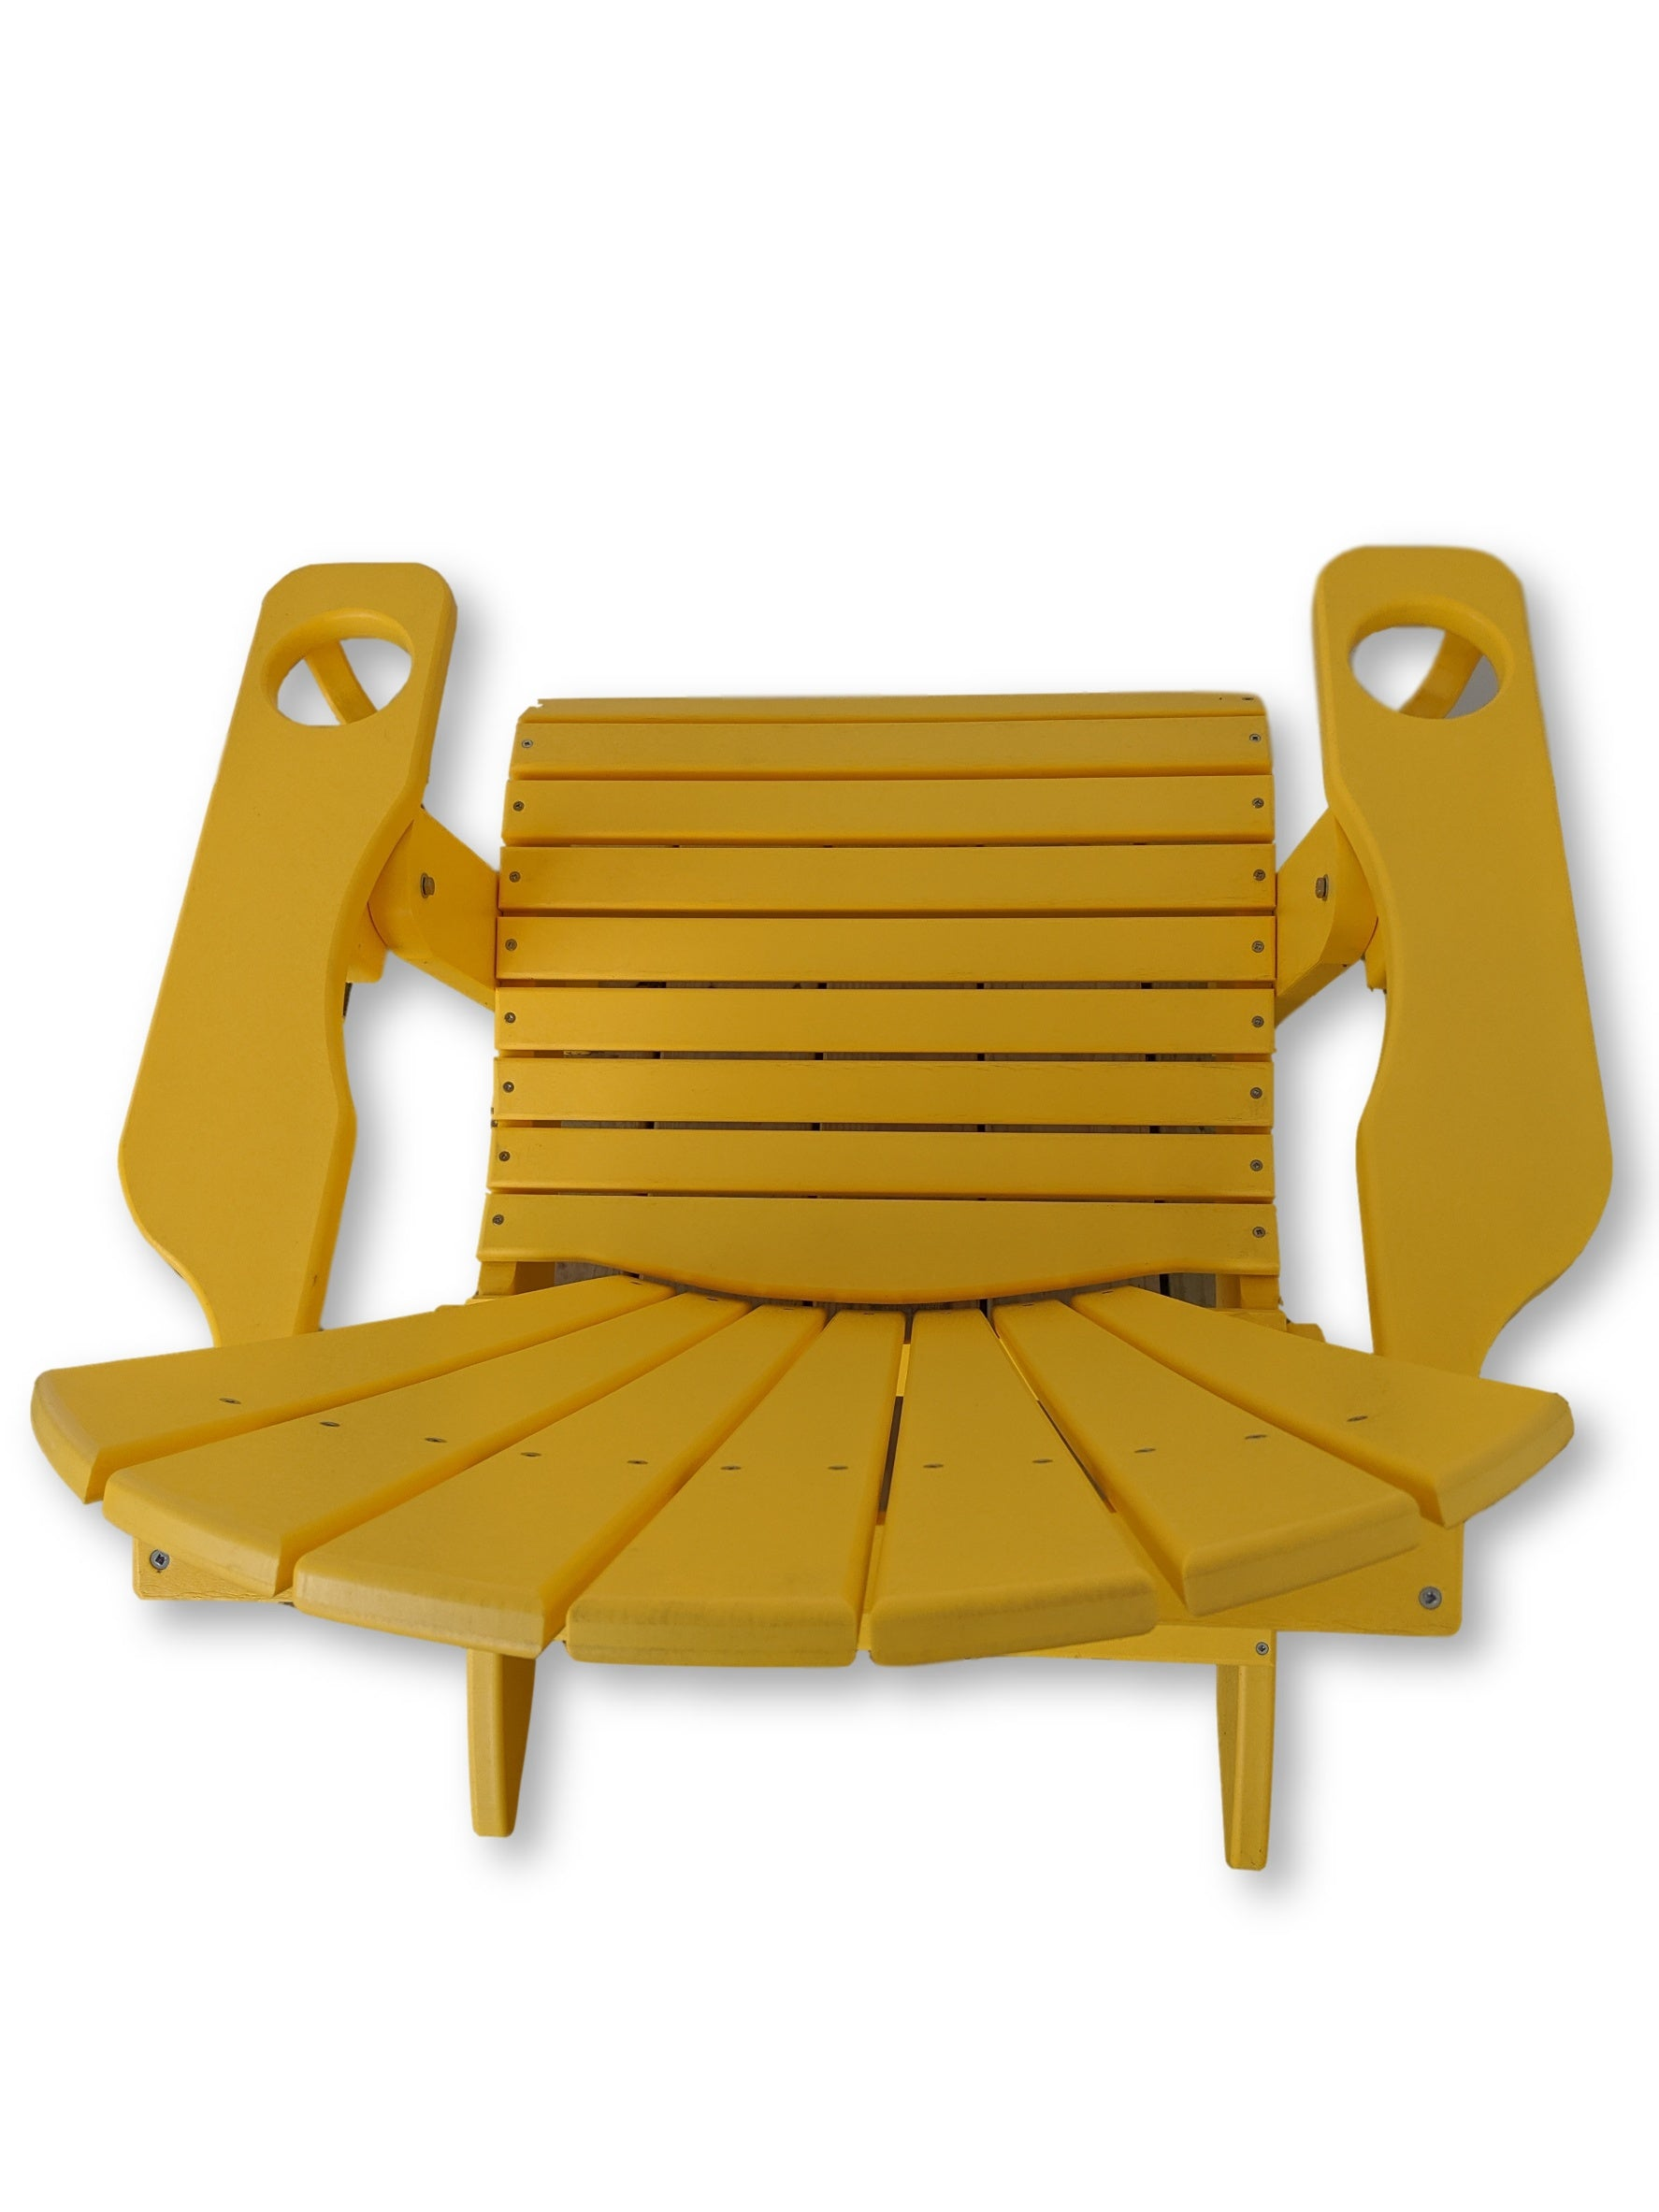 Yellow Folding Adirondack Chair with Cup Holders